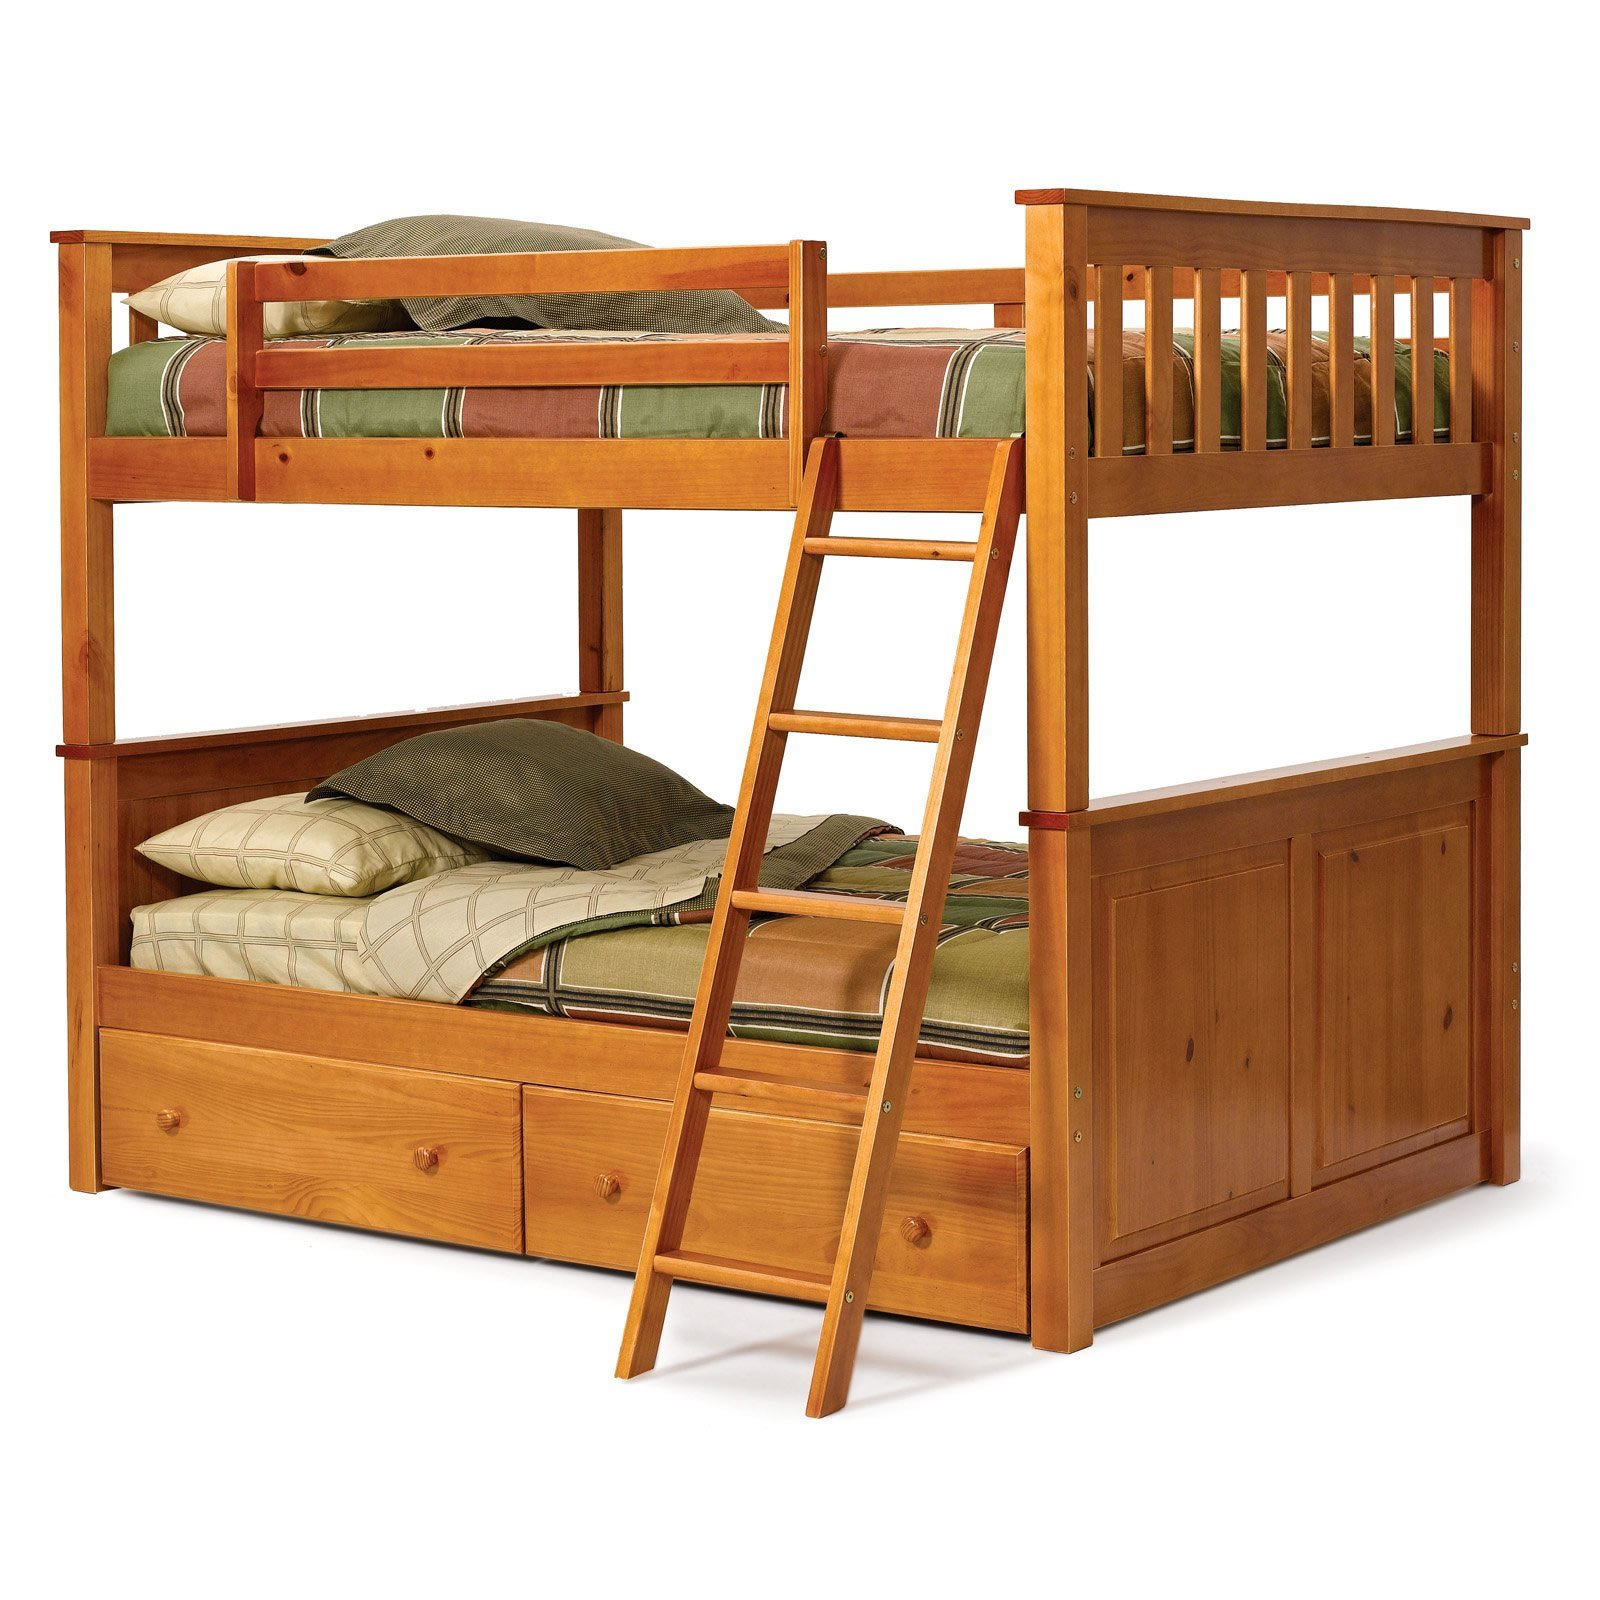 Choosing Best Bunk Beds For Your Kids Wikiperiment Interiors Inside Ideas Interiors design about Everything [magnanprojects.com]